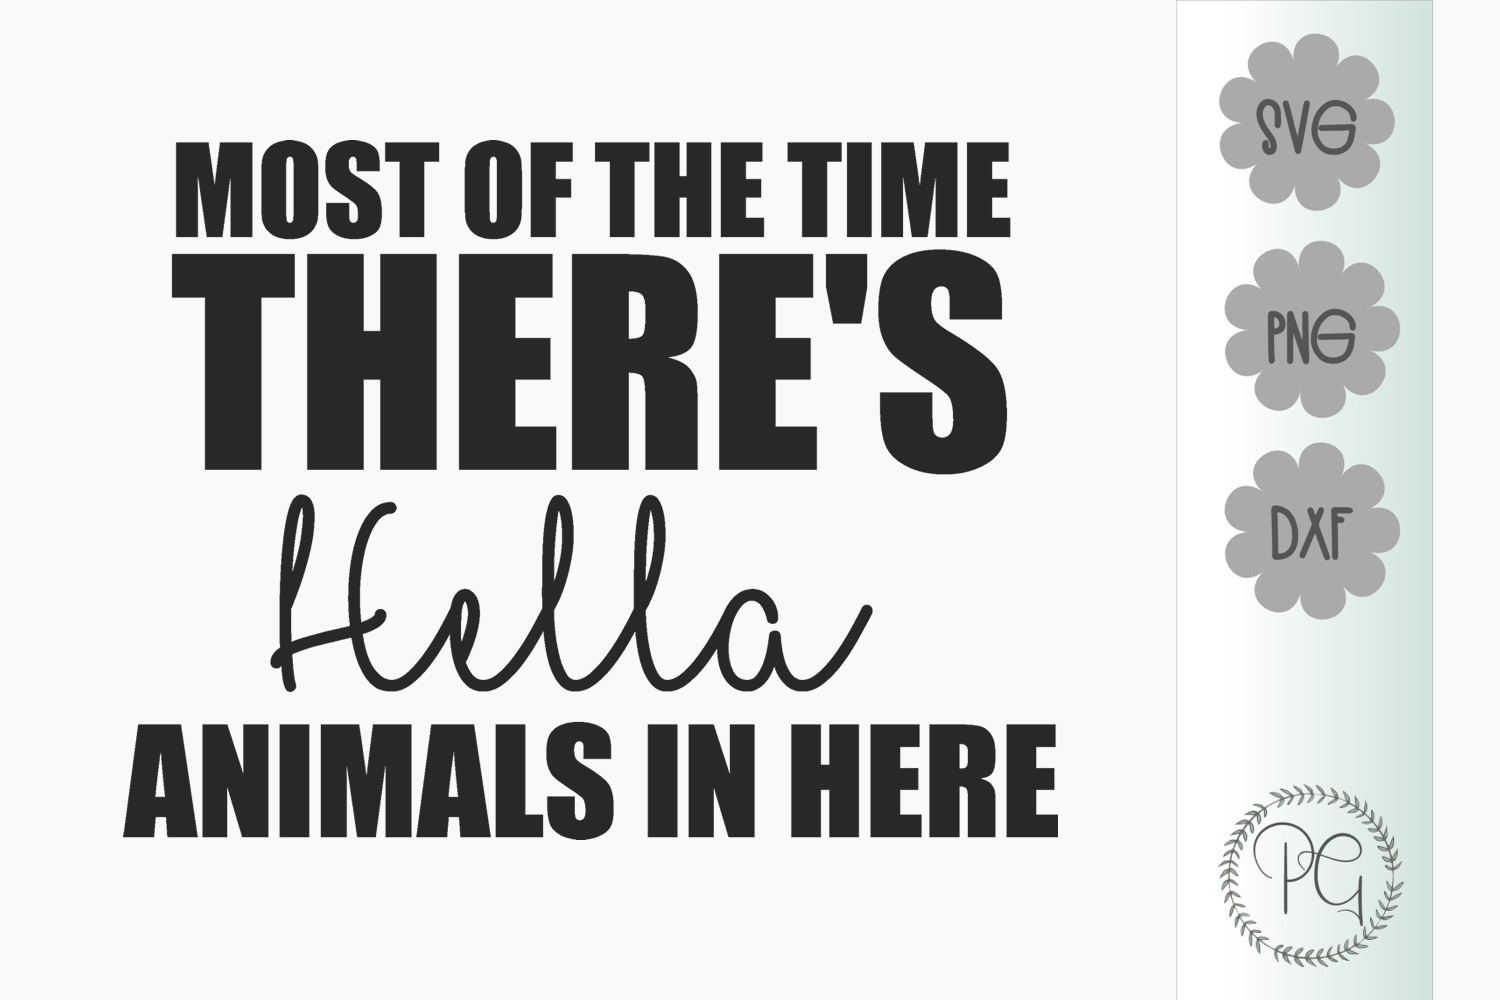 Hella Animals In Here SVG PNG JPG DXF example image 2